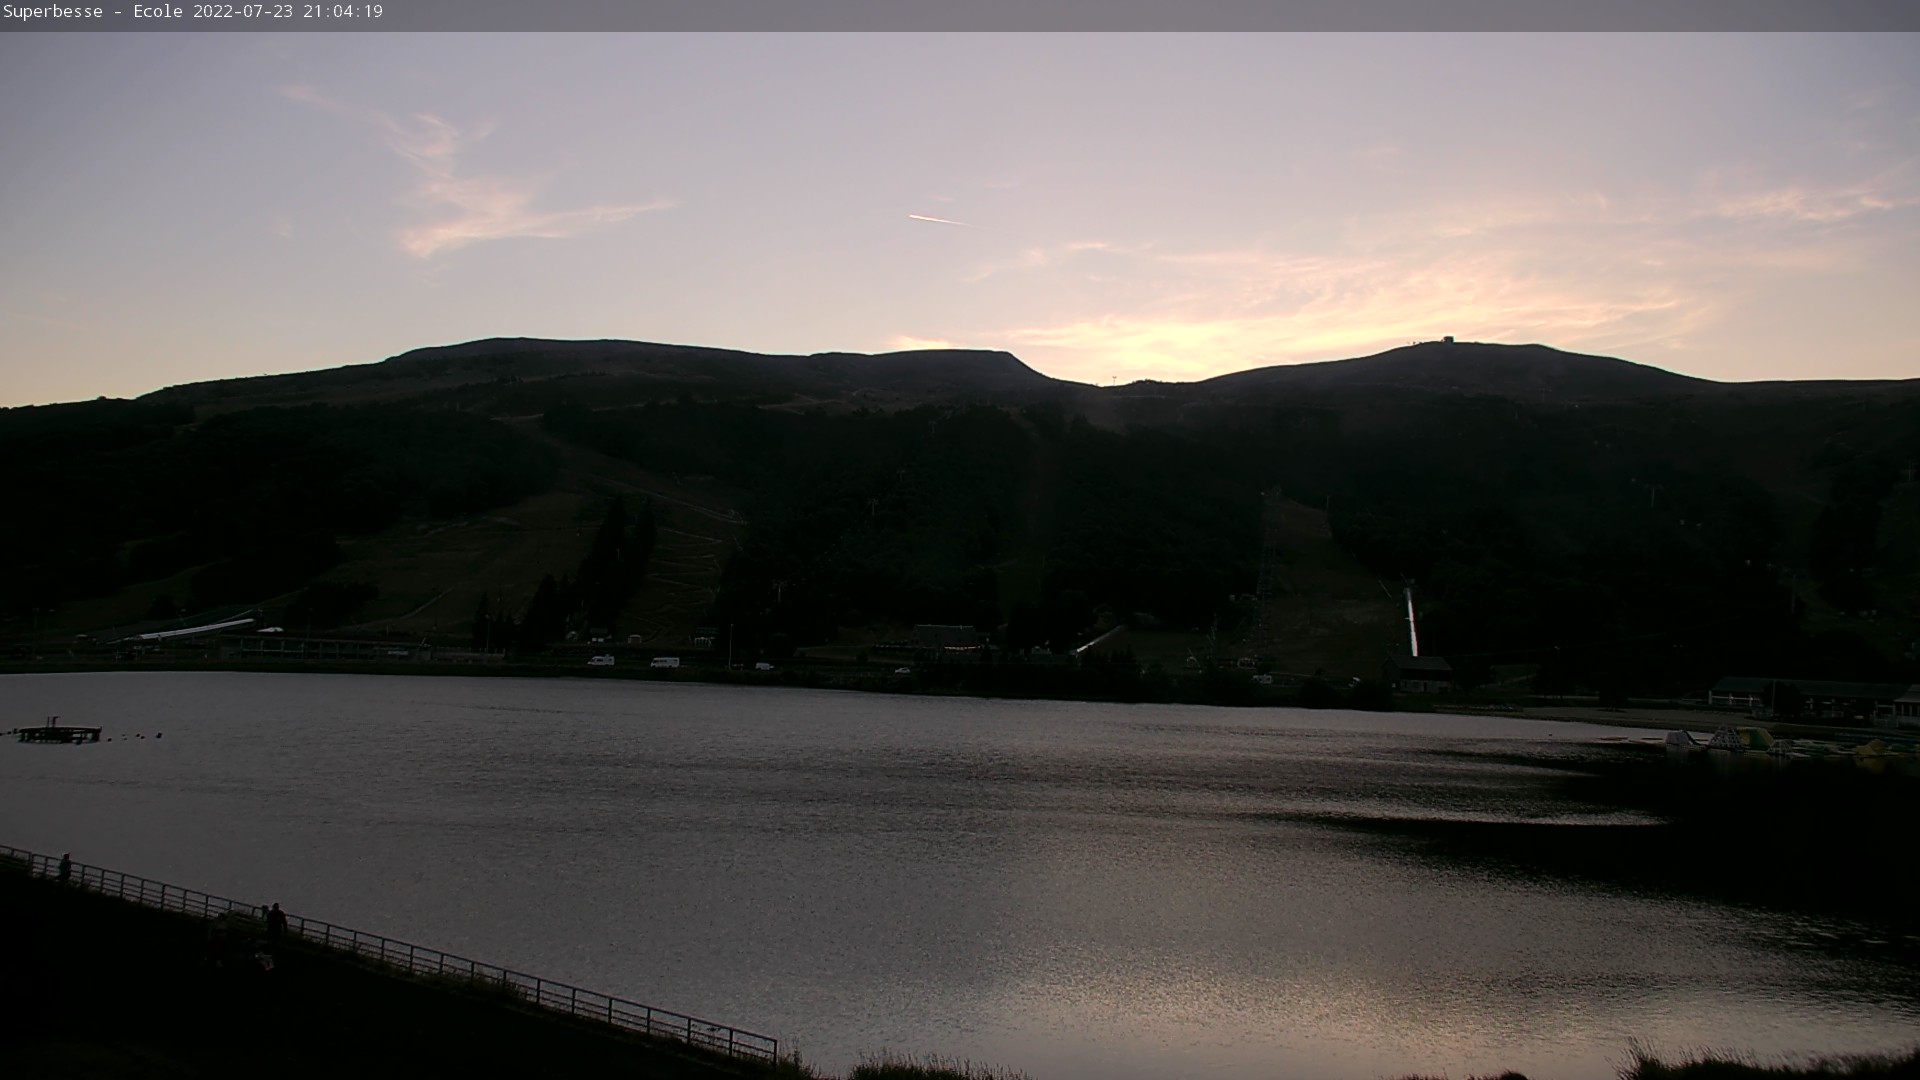 webcam de Super-Besse